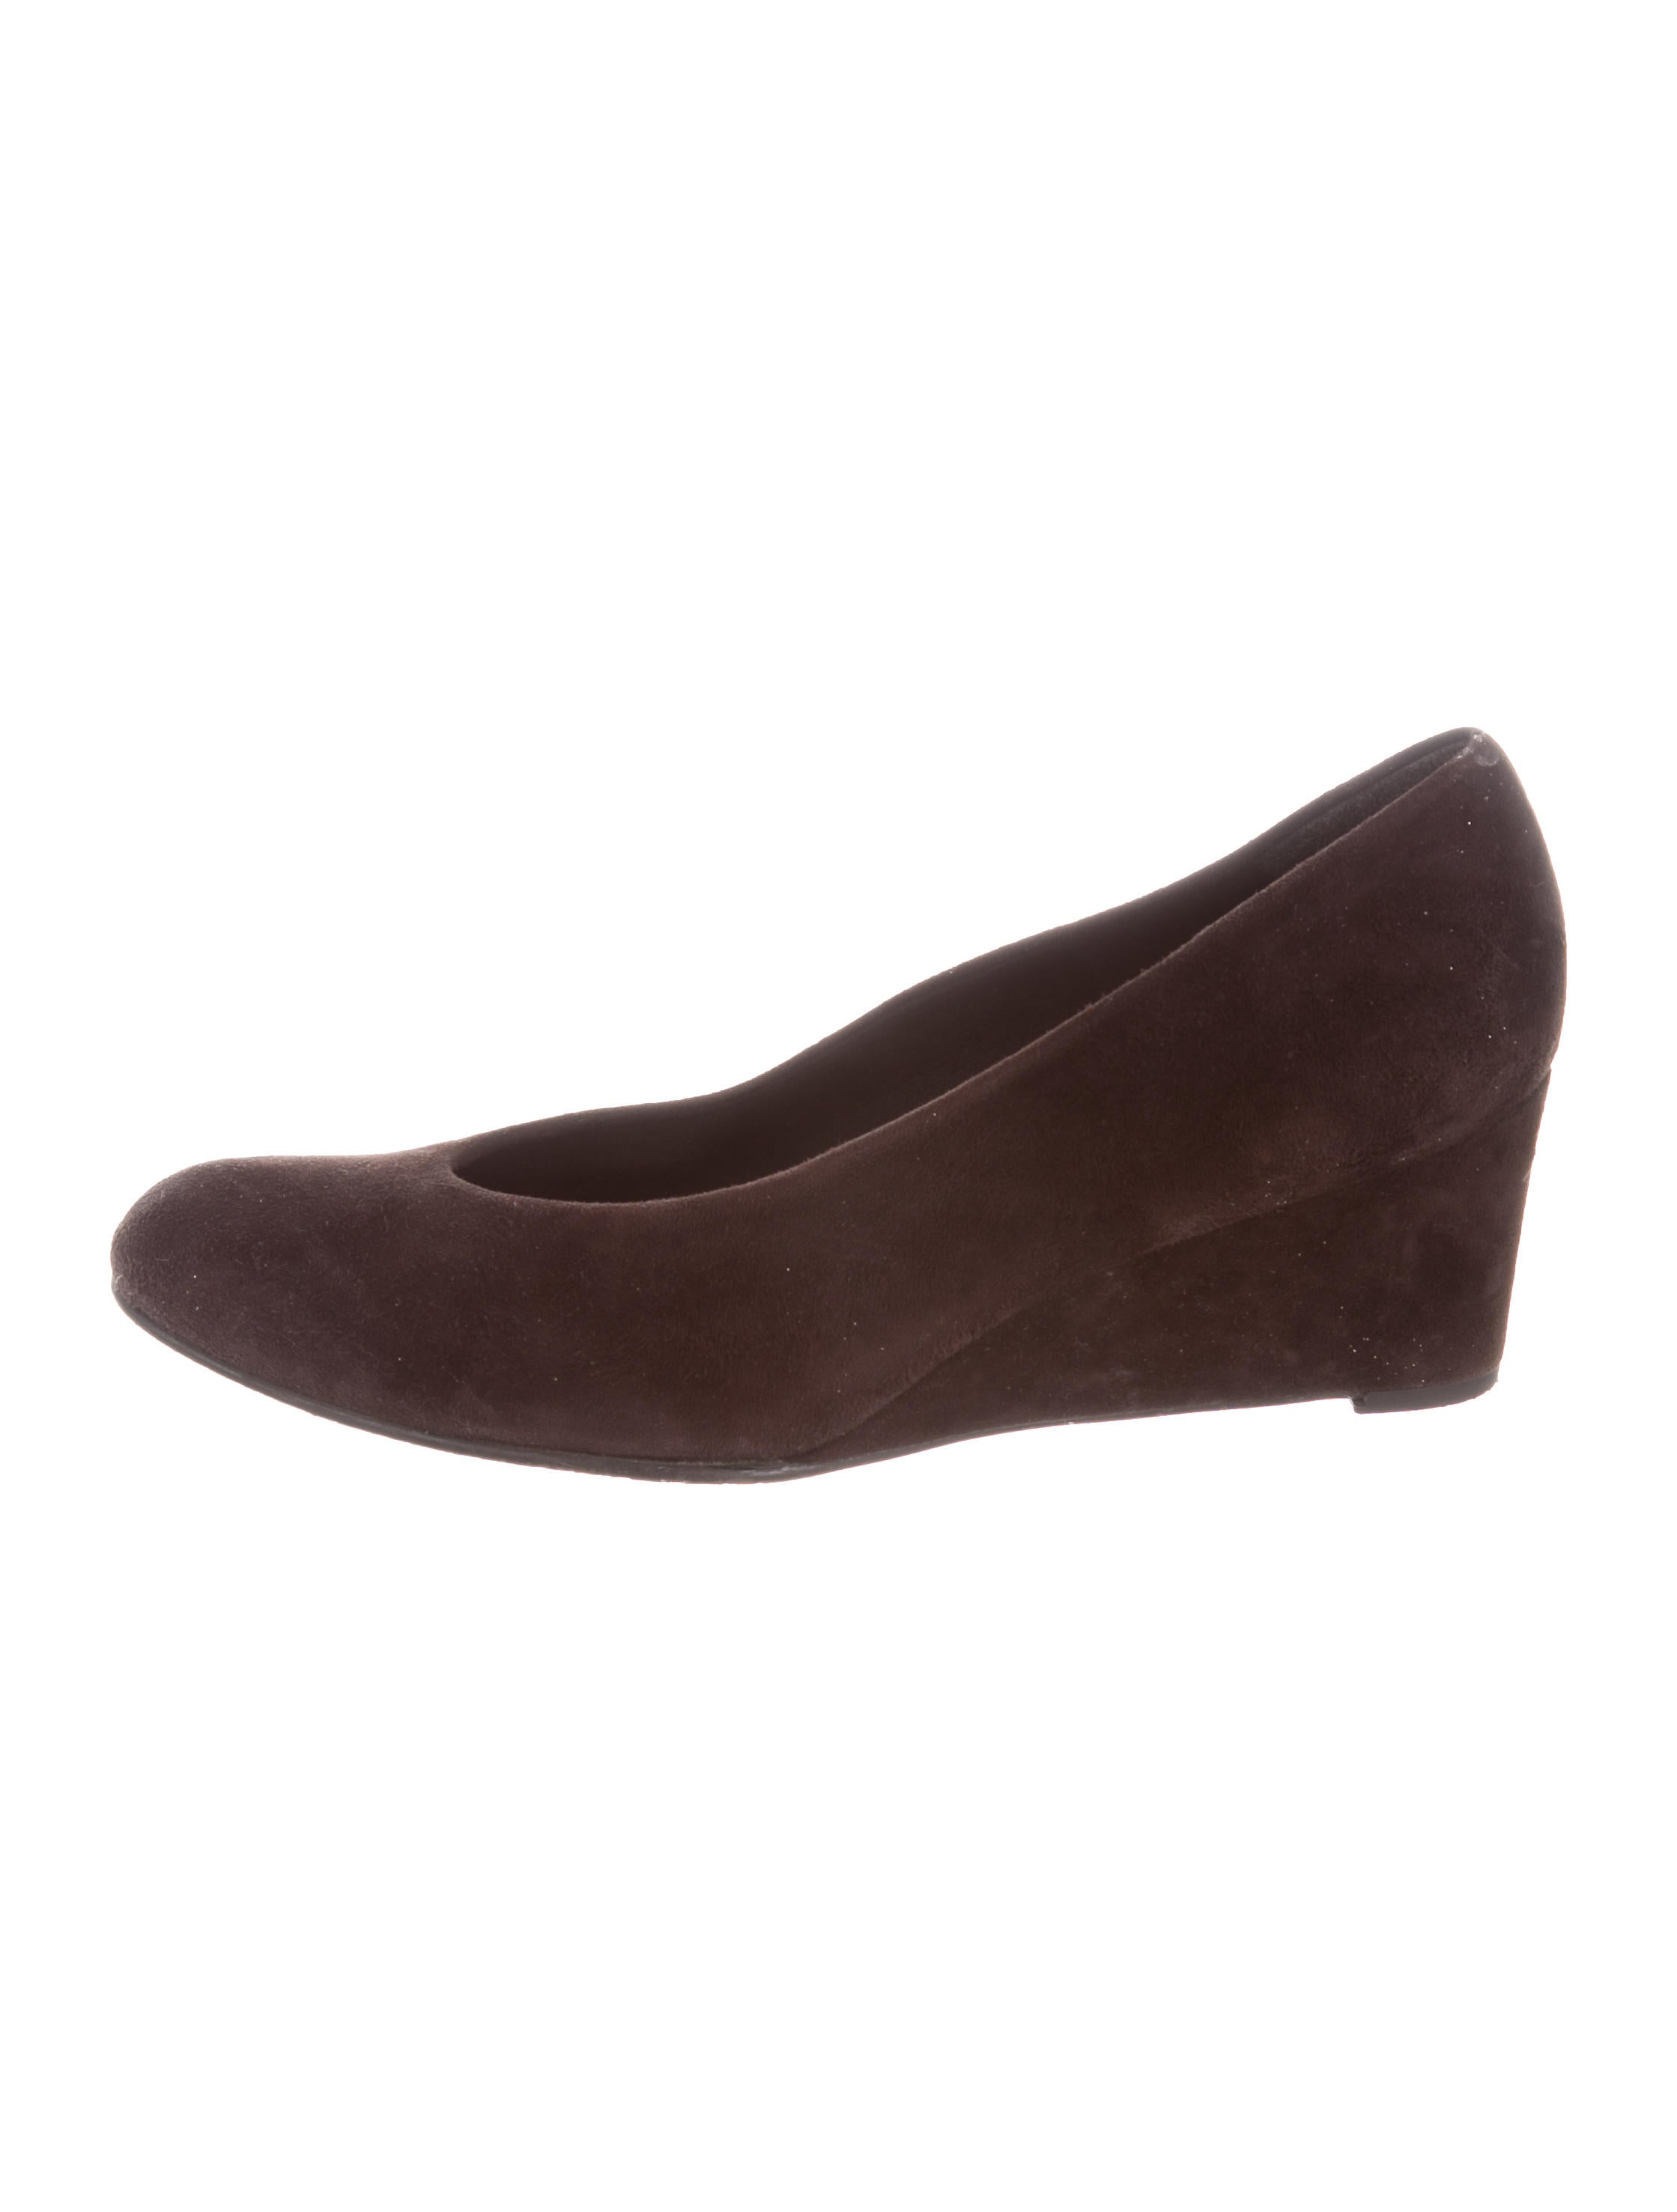 Stuart Weitzman Suede Round-Toe Wedges free shipping discount 9DMEEW